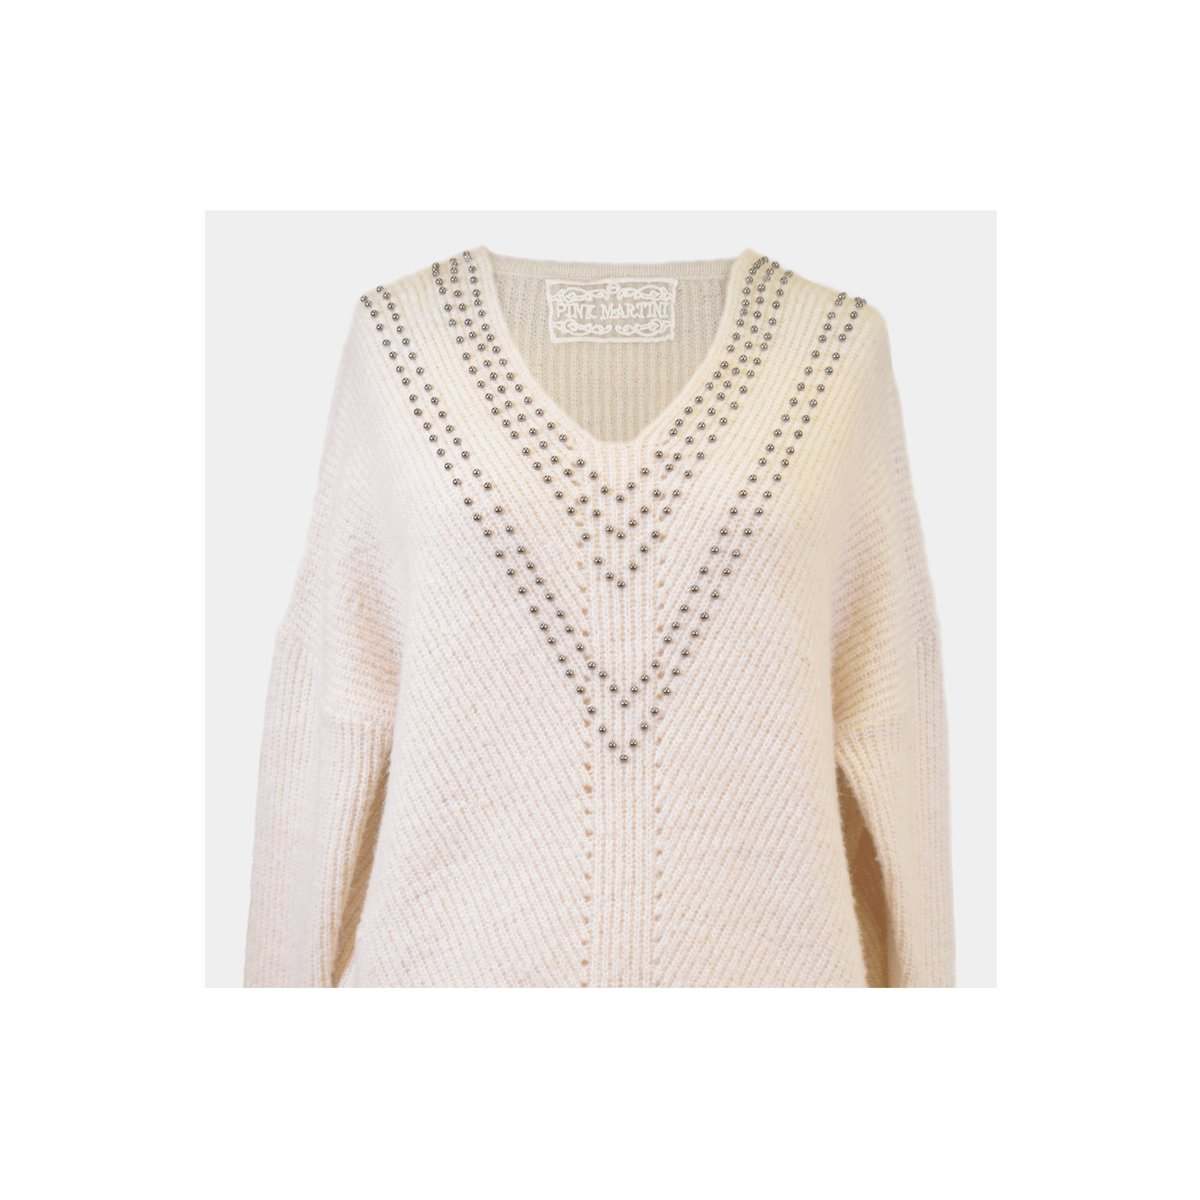 probable Beige late bite to during It's vneckknitwear frost knitwear never sweater winterwear too warmly times these of knit dress sweater XXPBwq